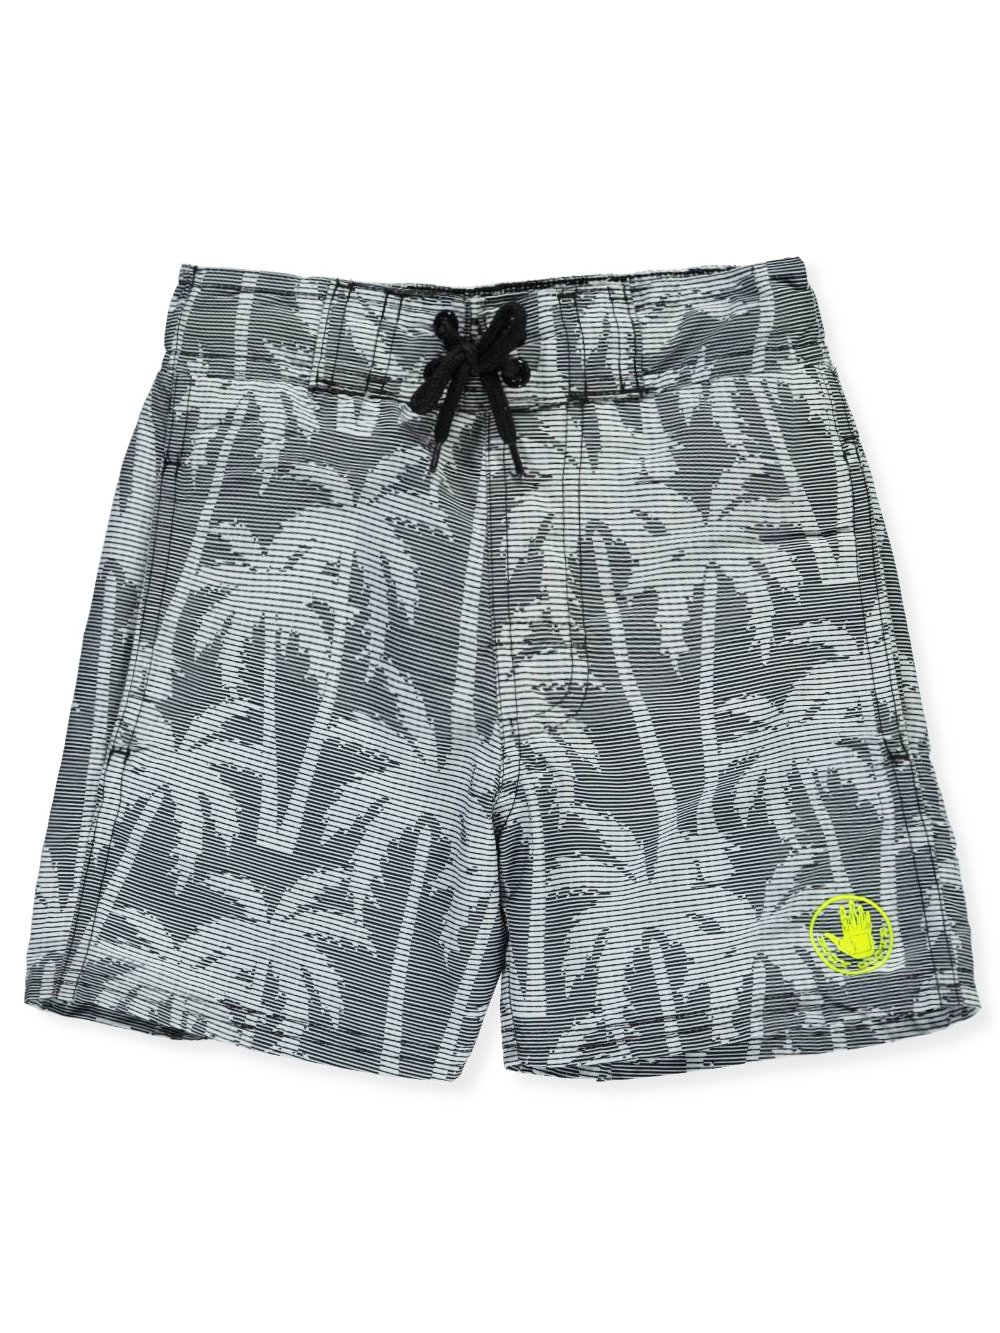 Body Glove Boys' Swim Trunks